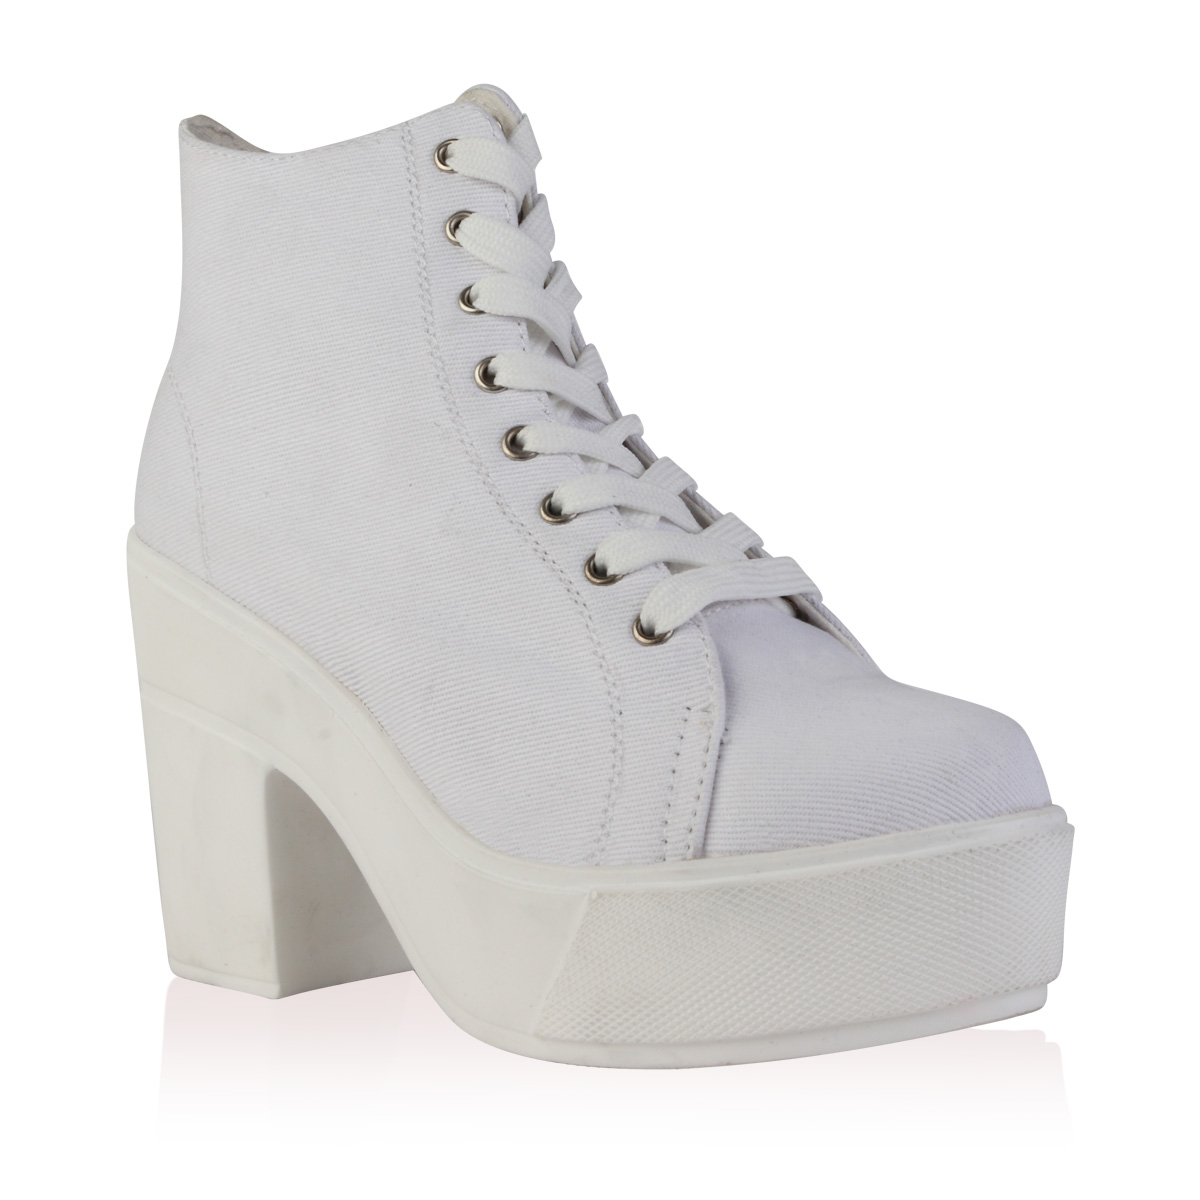 New Womens Lace Up Canvas In White Platform Block Heel Boots Shoes ...